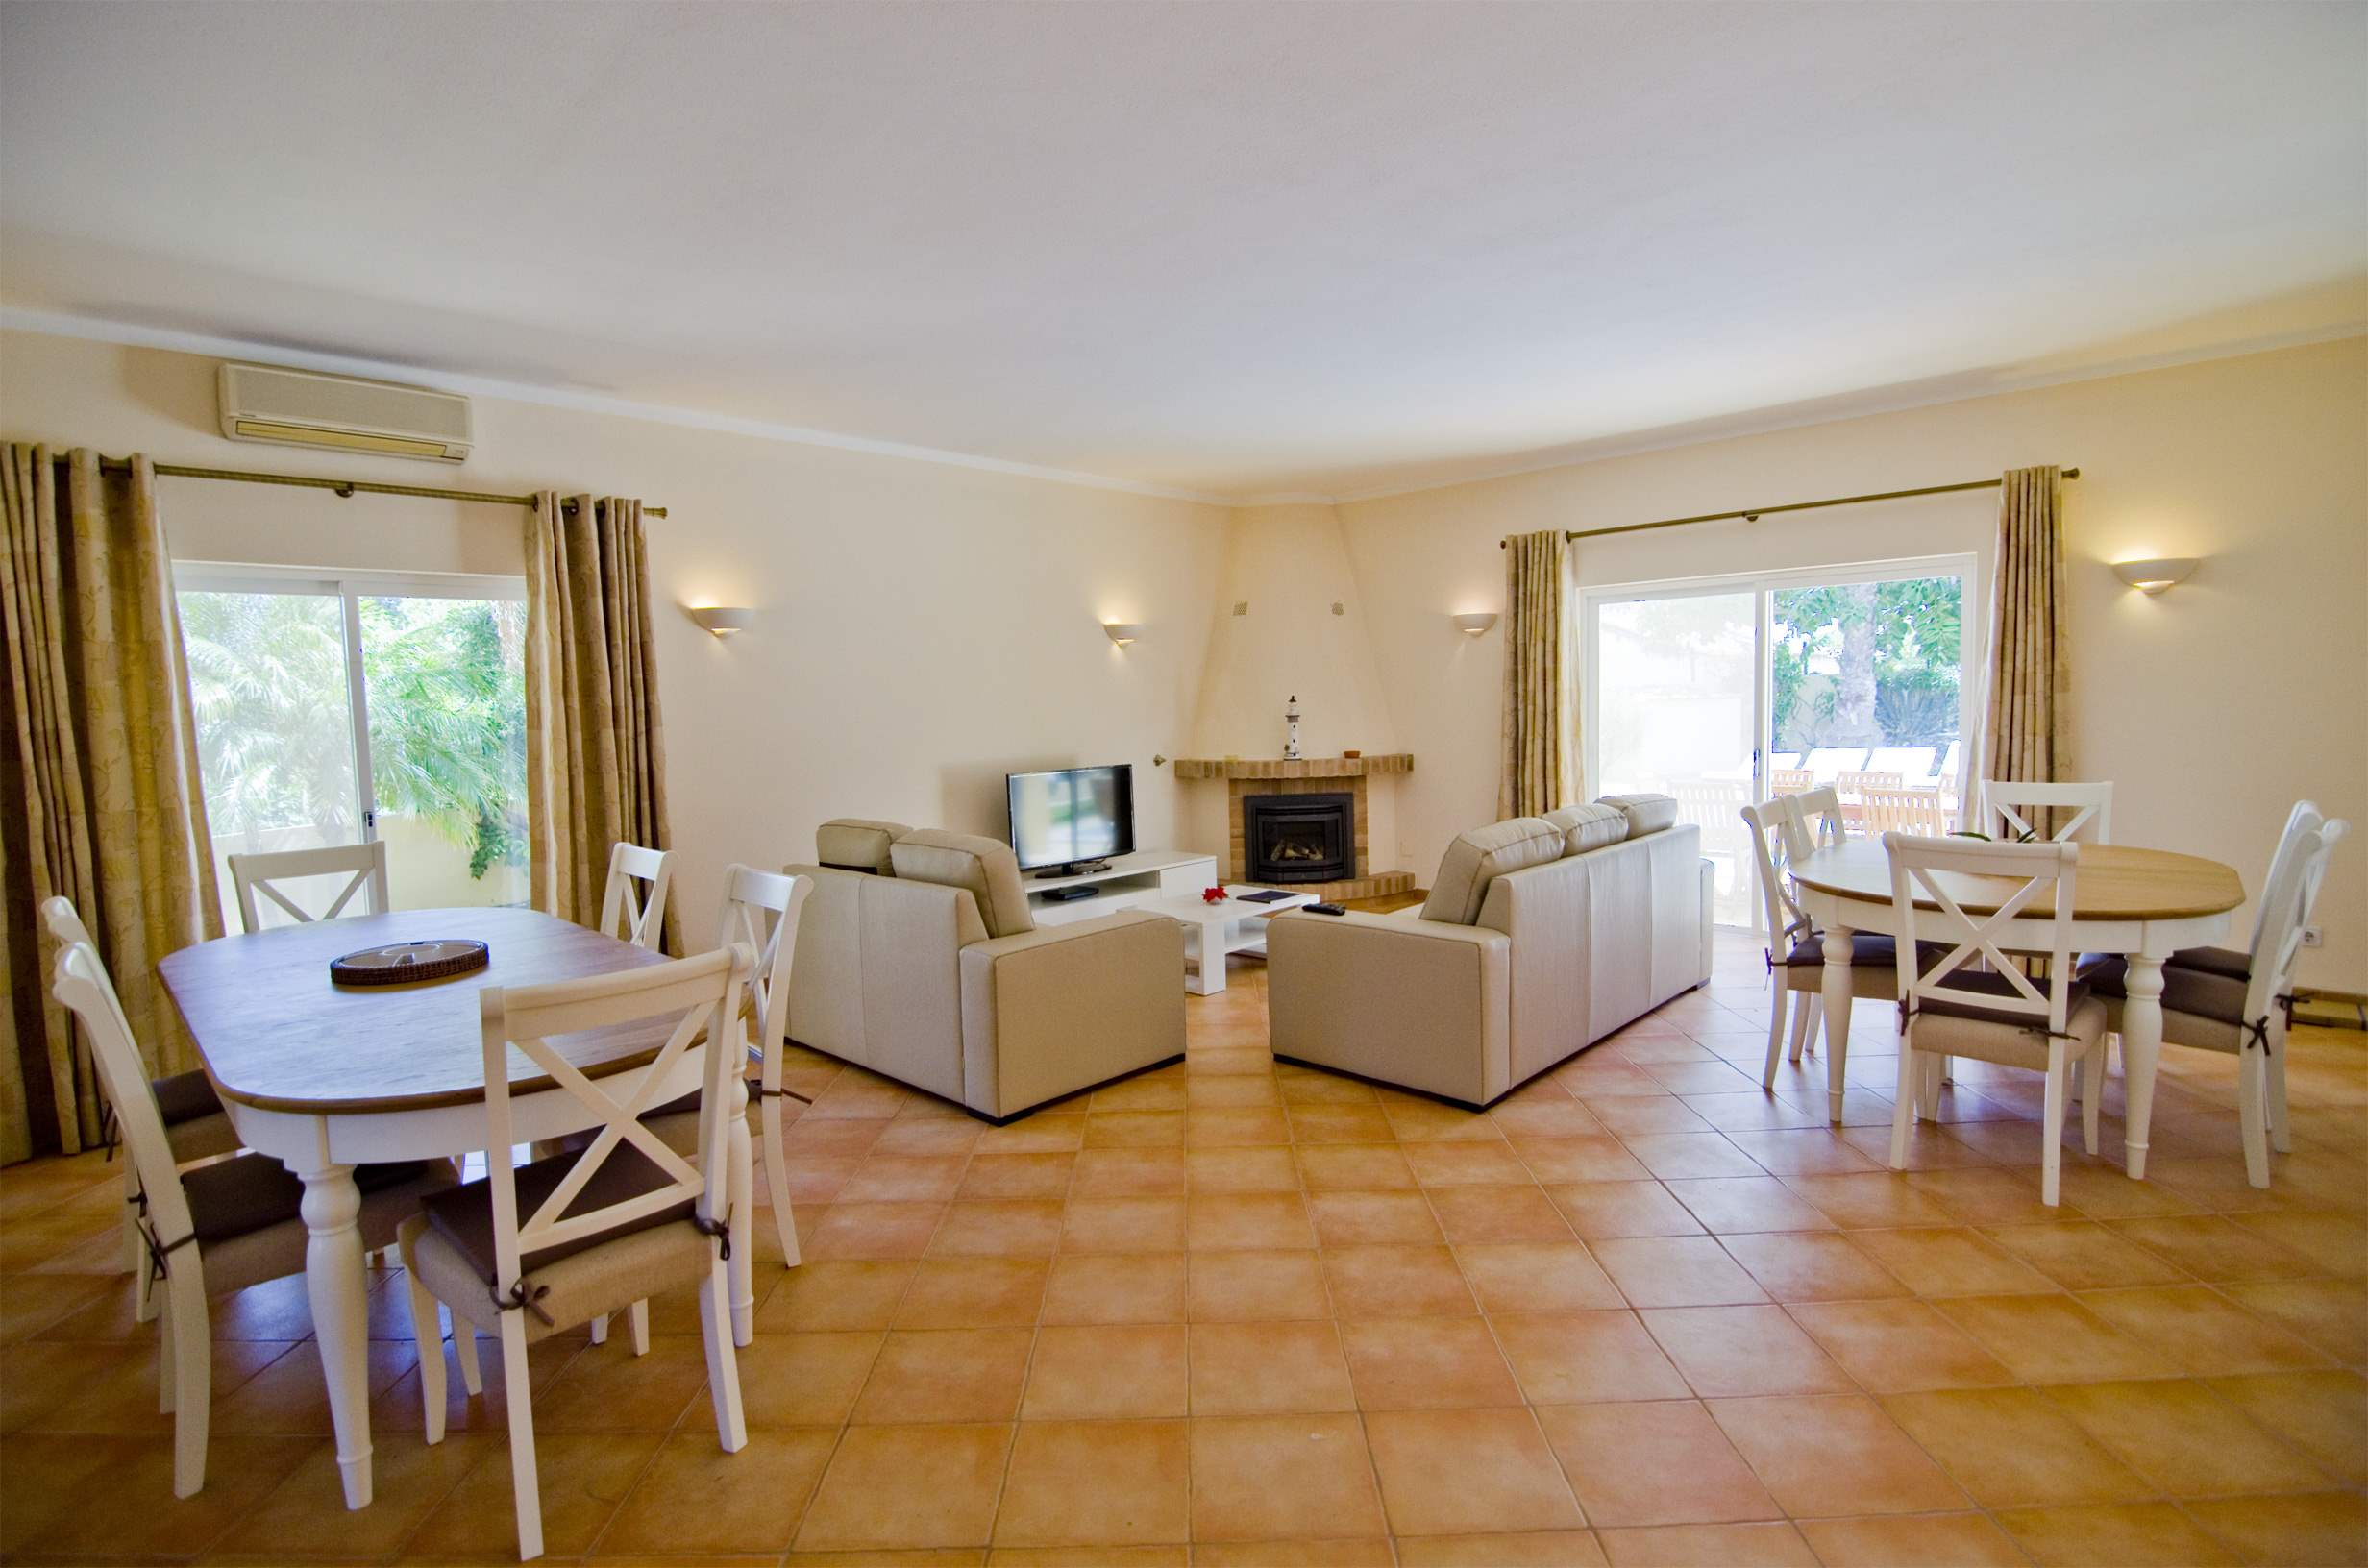 Villa Jasmina, 4 bedroom villa in Vale do Lobo, Algarve Photo #5